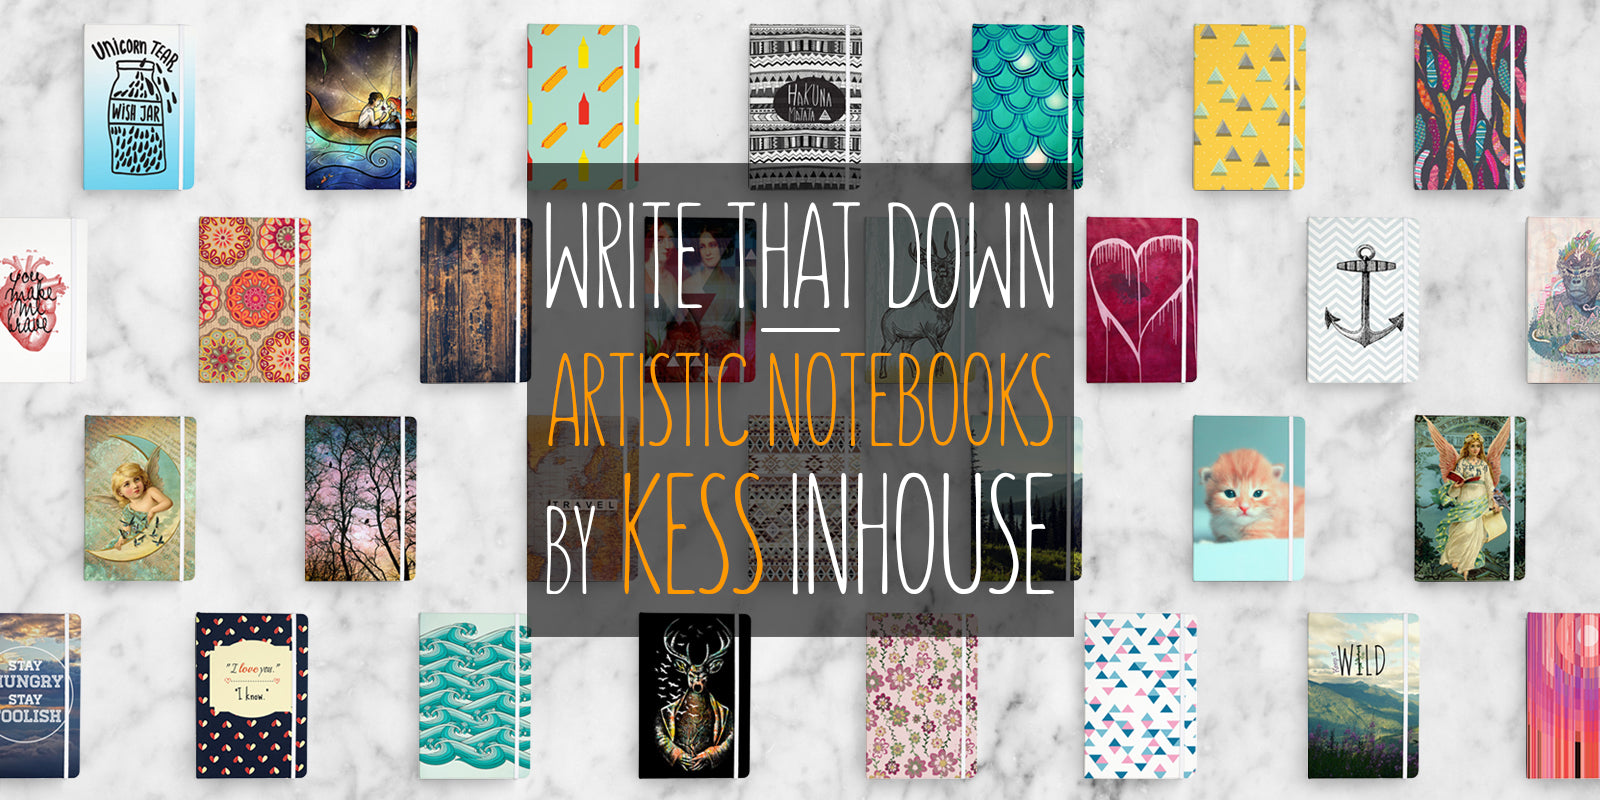 KESS InHouse Everything Notebooks